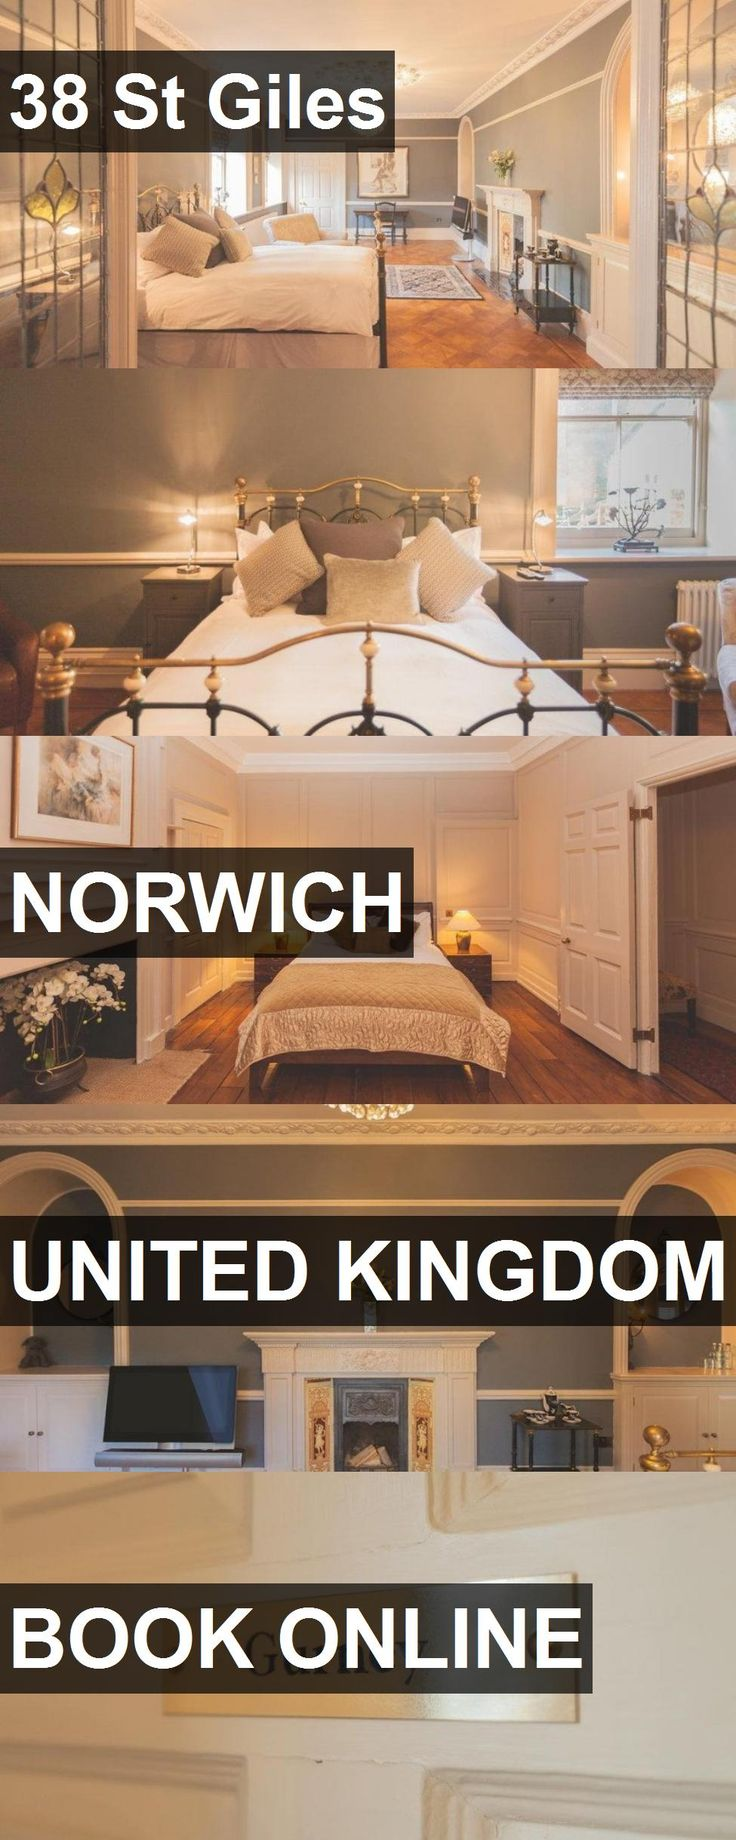 Hotel 38 St Giles in Norwich, United Kingdom. For more information, photos, reviews and best prices please follow the link. #UnitedKingdom #Norwich #38StGiles #hotel #travel #vacation